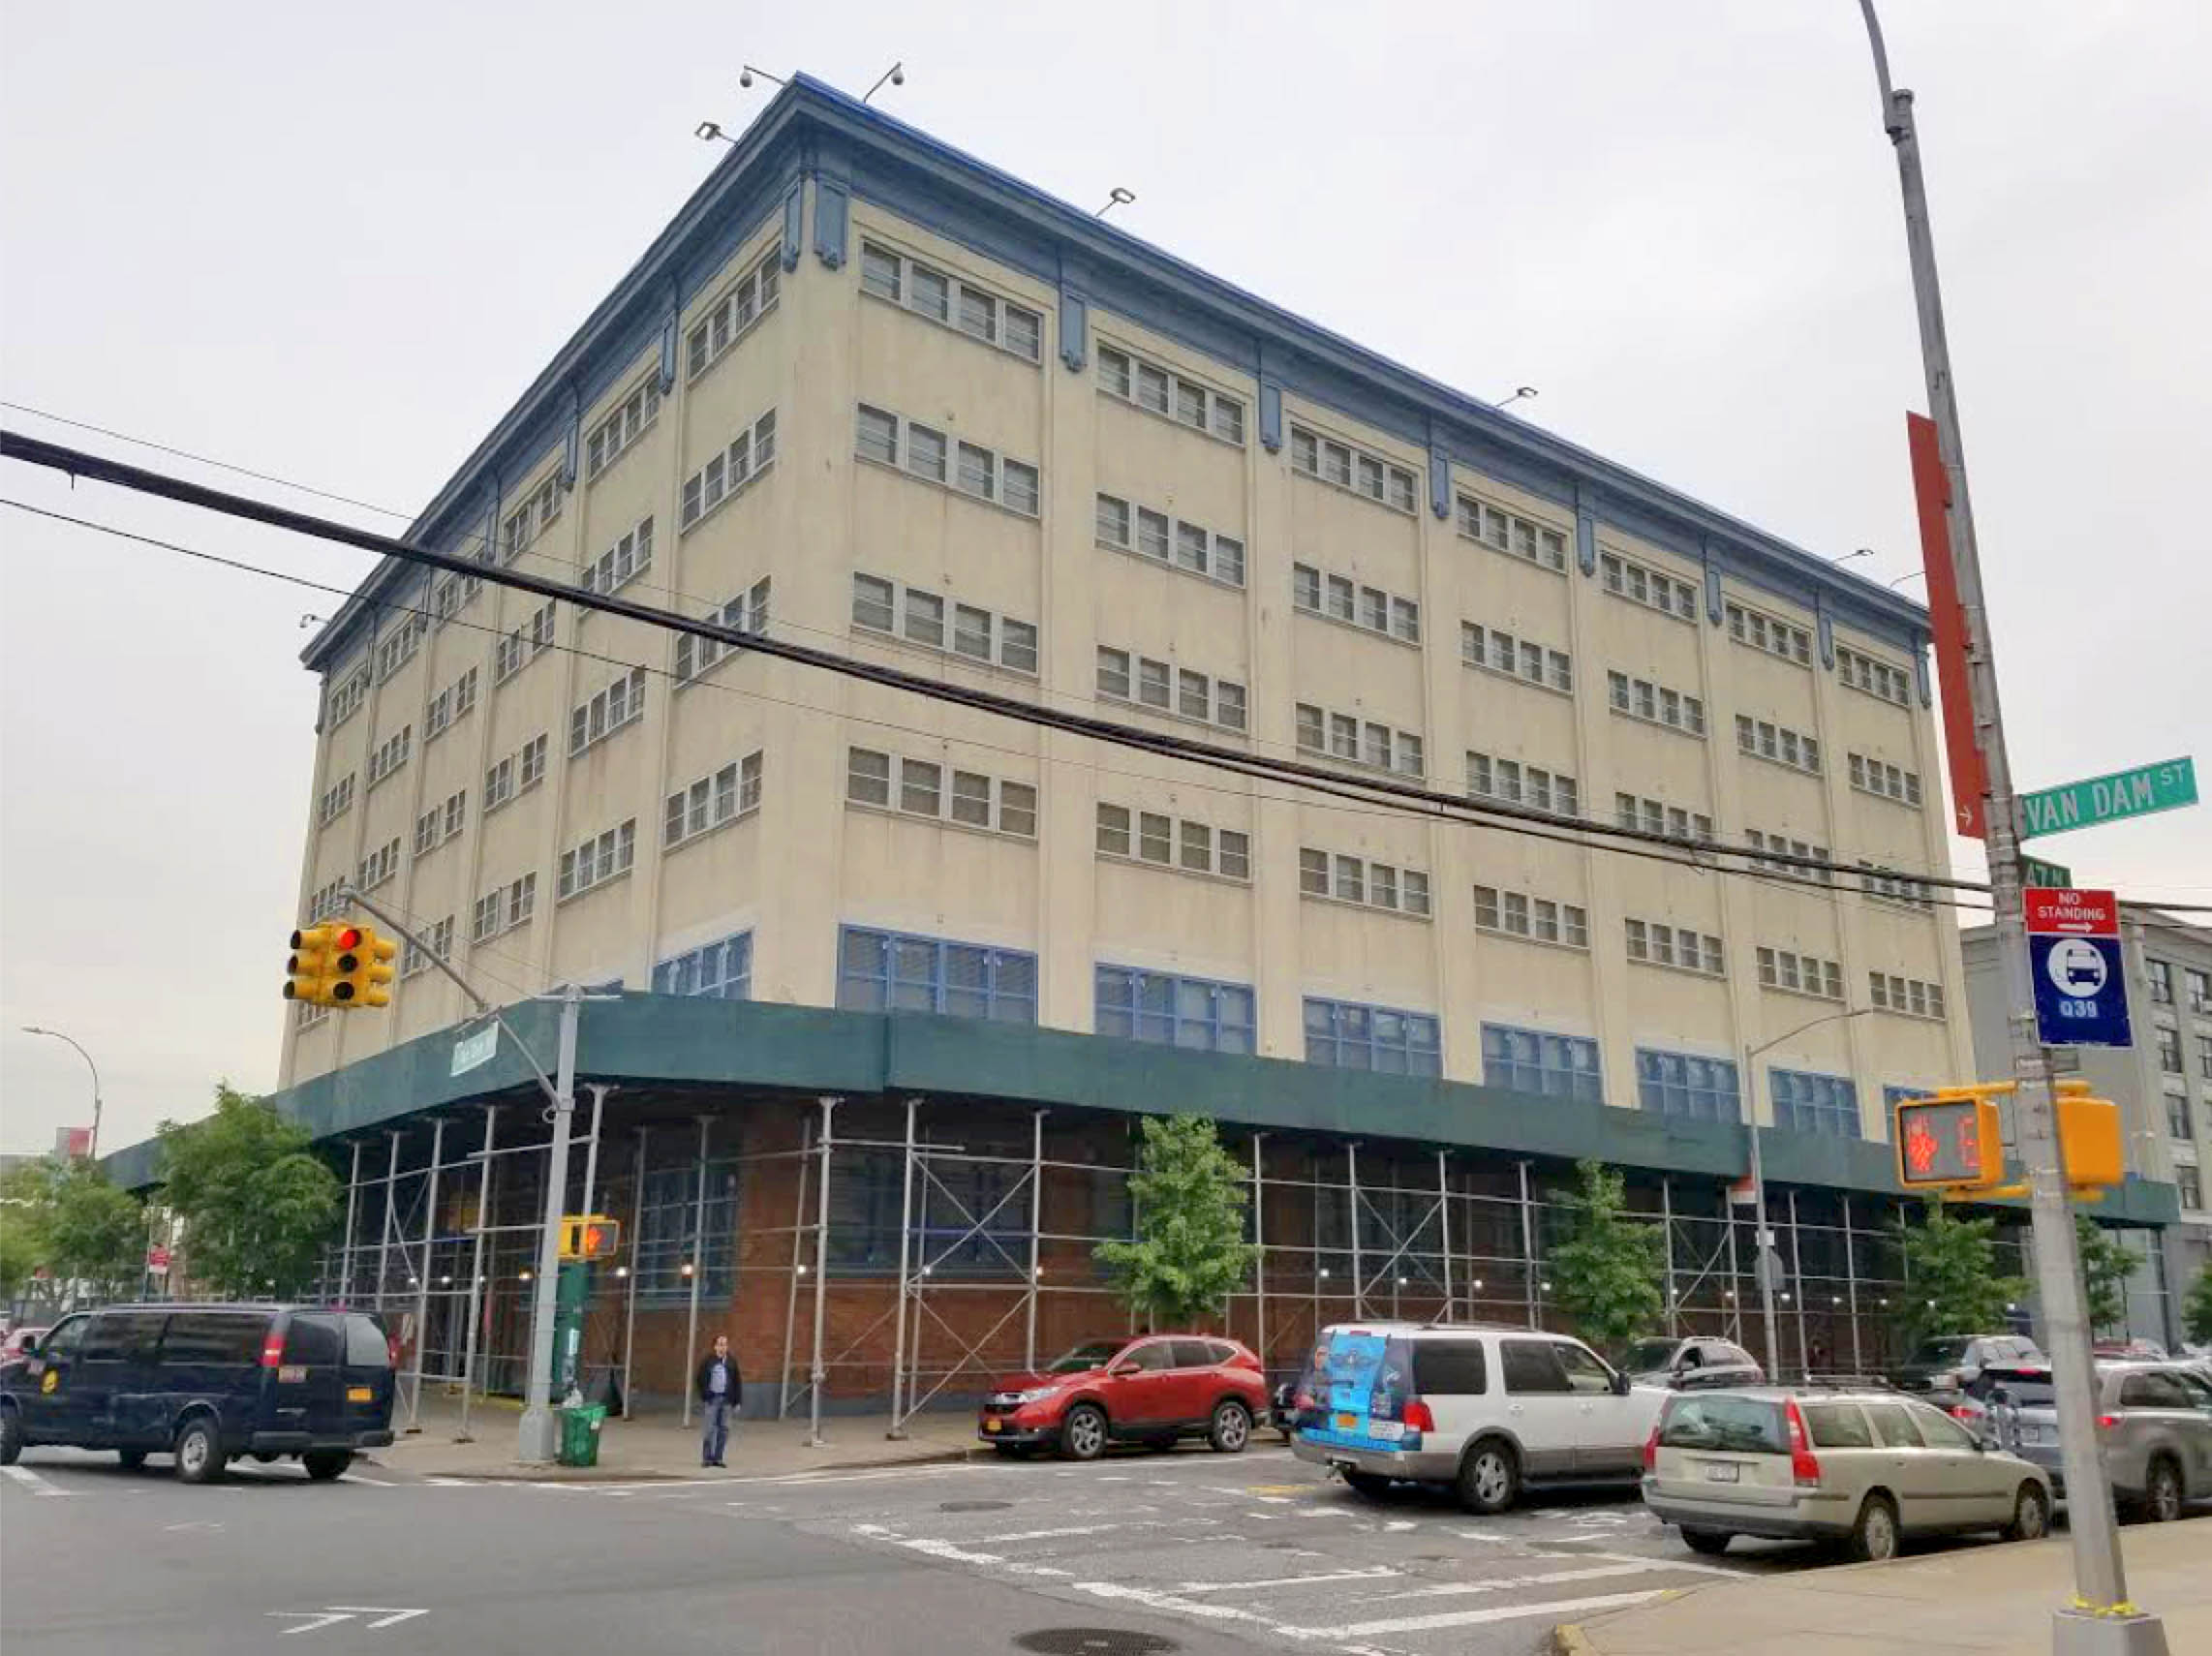 Queens Correctional Facility Loses Officer due to Deadly Dispute